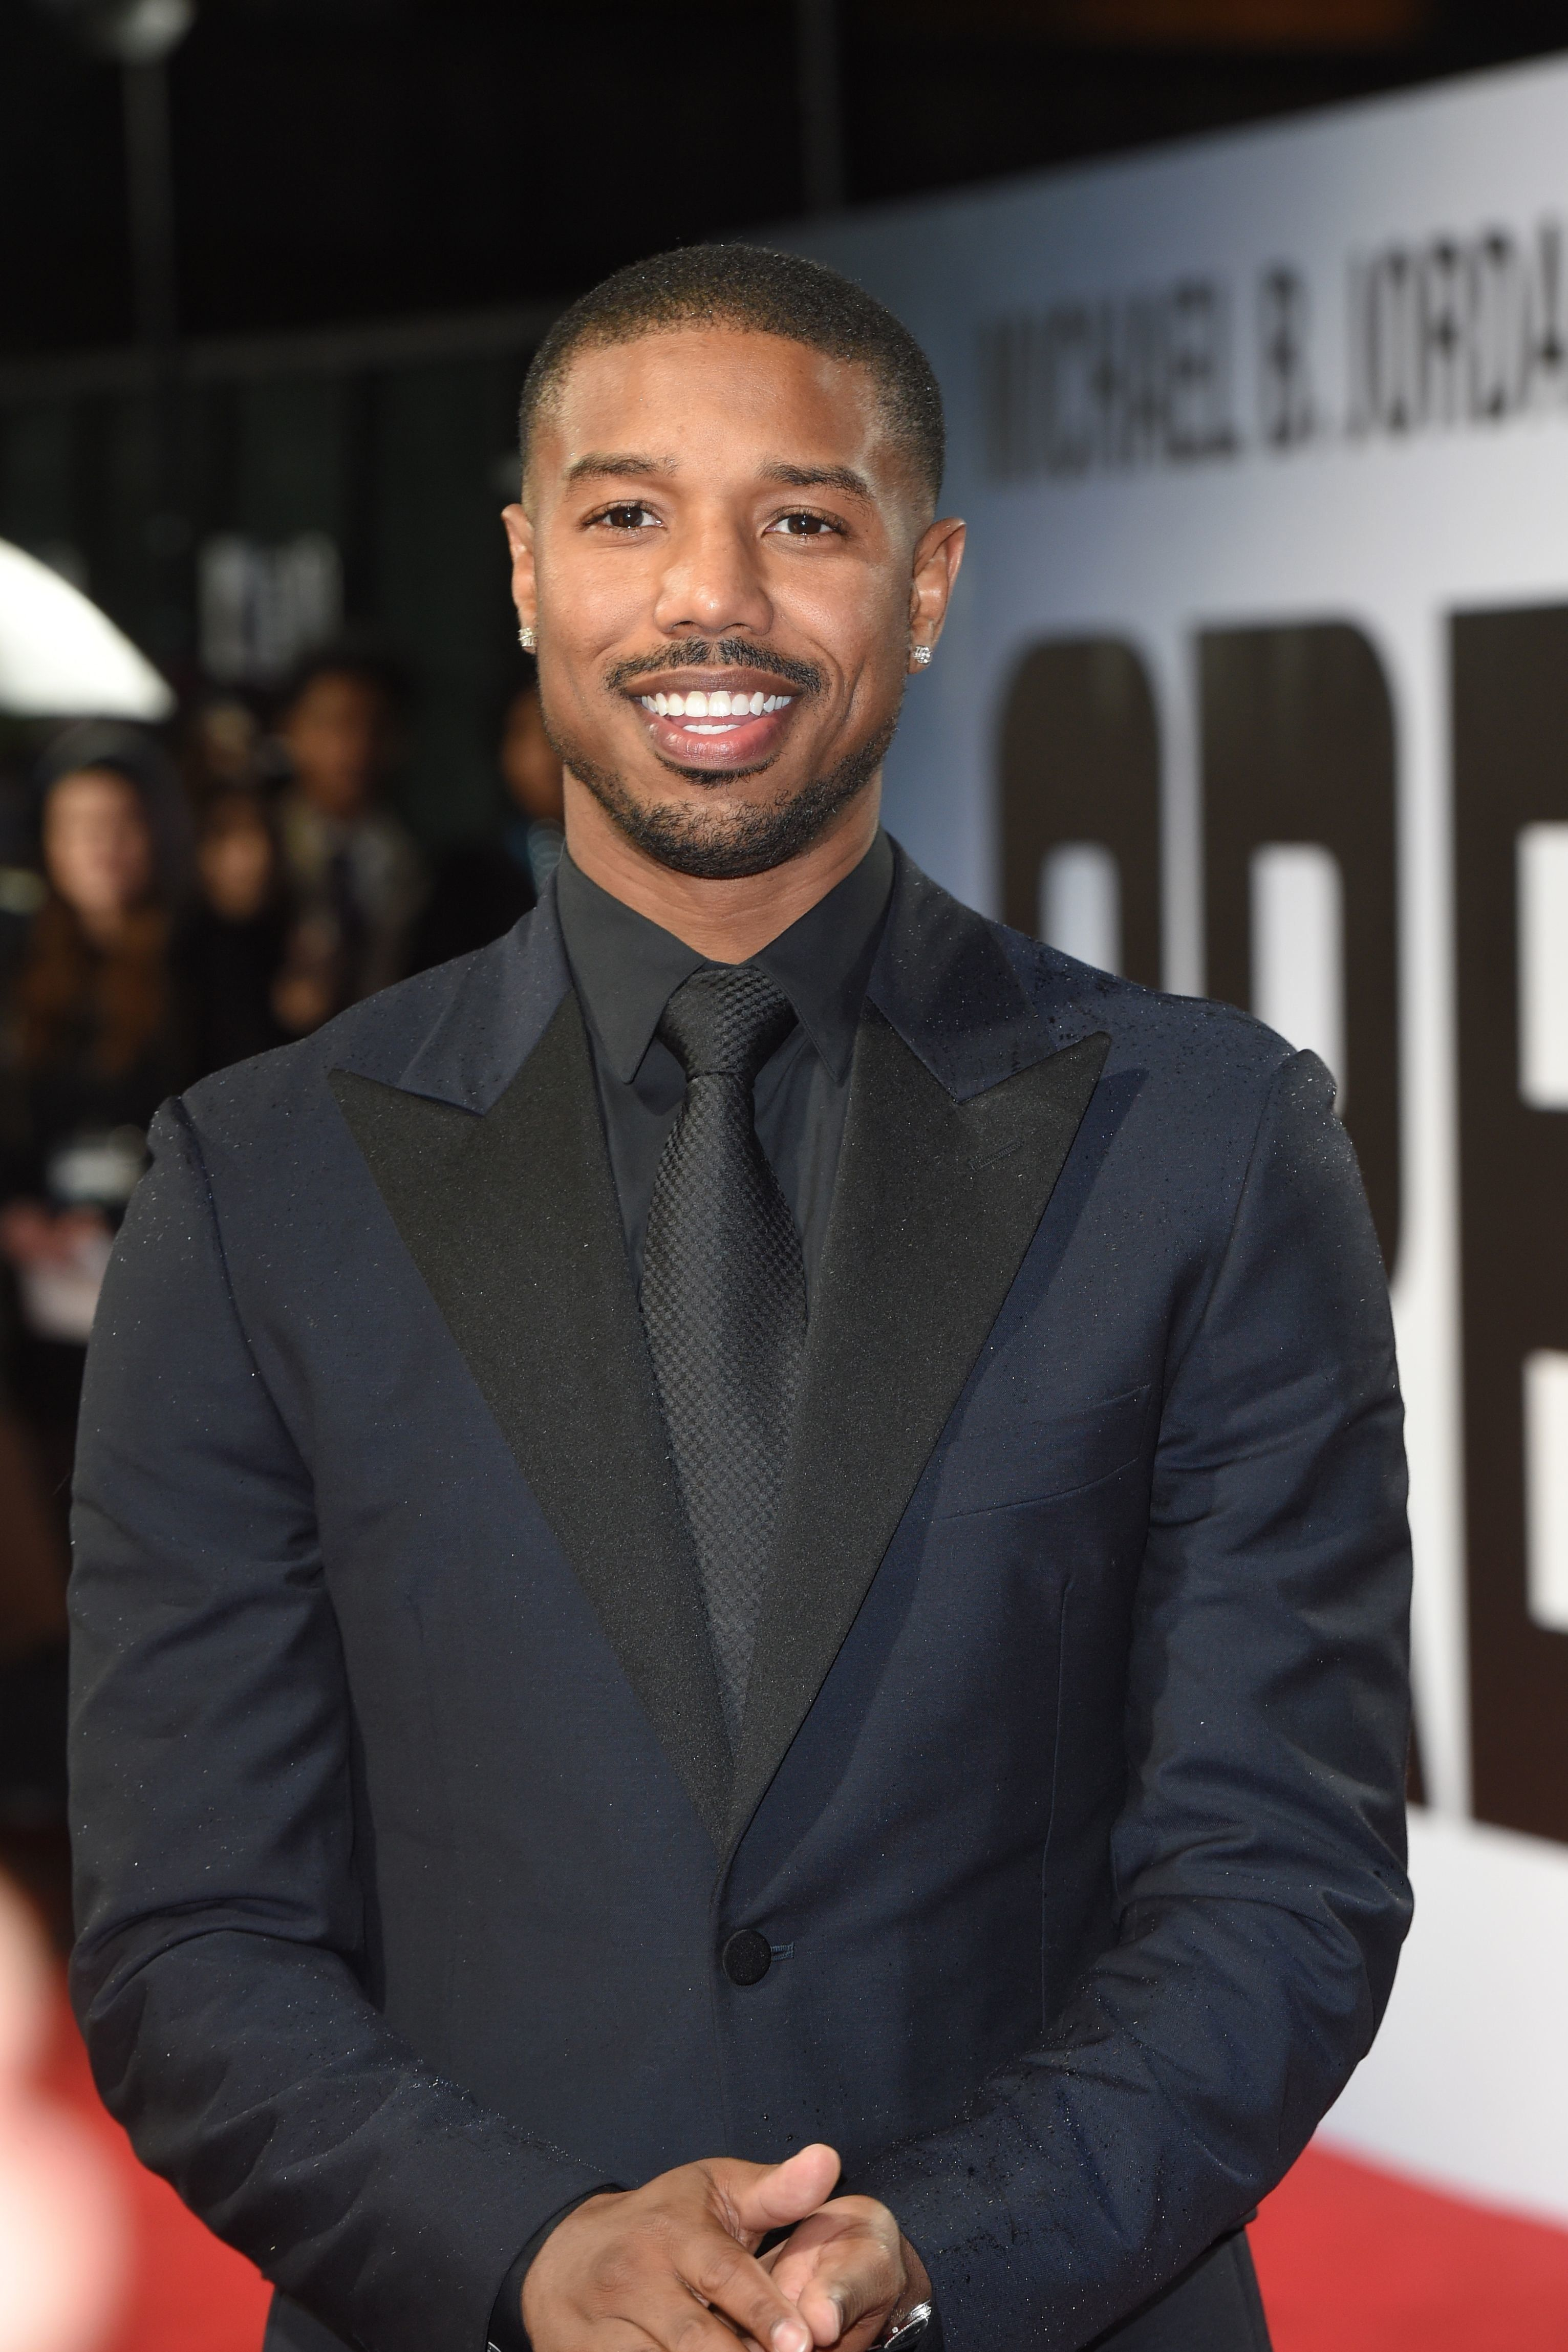 US actor Michael B Jordan poses upon arrival to attend the European Premiere of the film 'Creed II' in London on November 28, 2018. (Photo by Anthony HARVEY / AFP)        (Photo credit should read ANTHONY HARVEY/AFP/Getty Images)